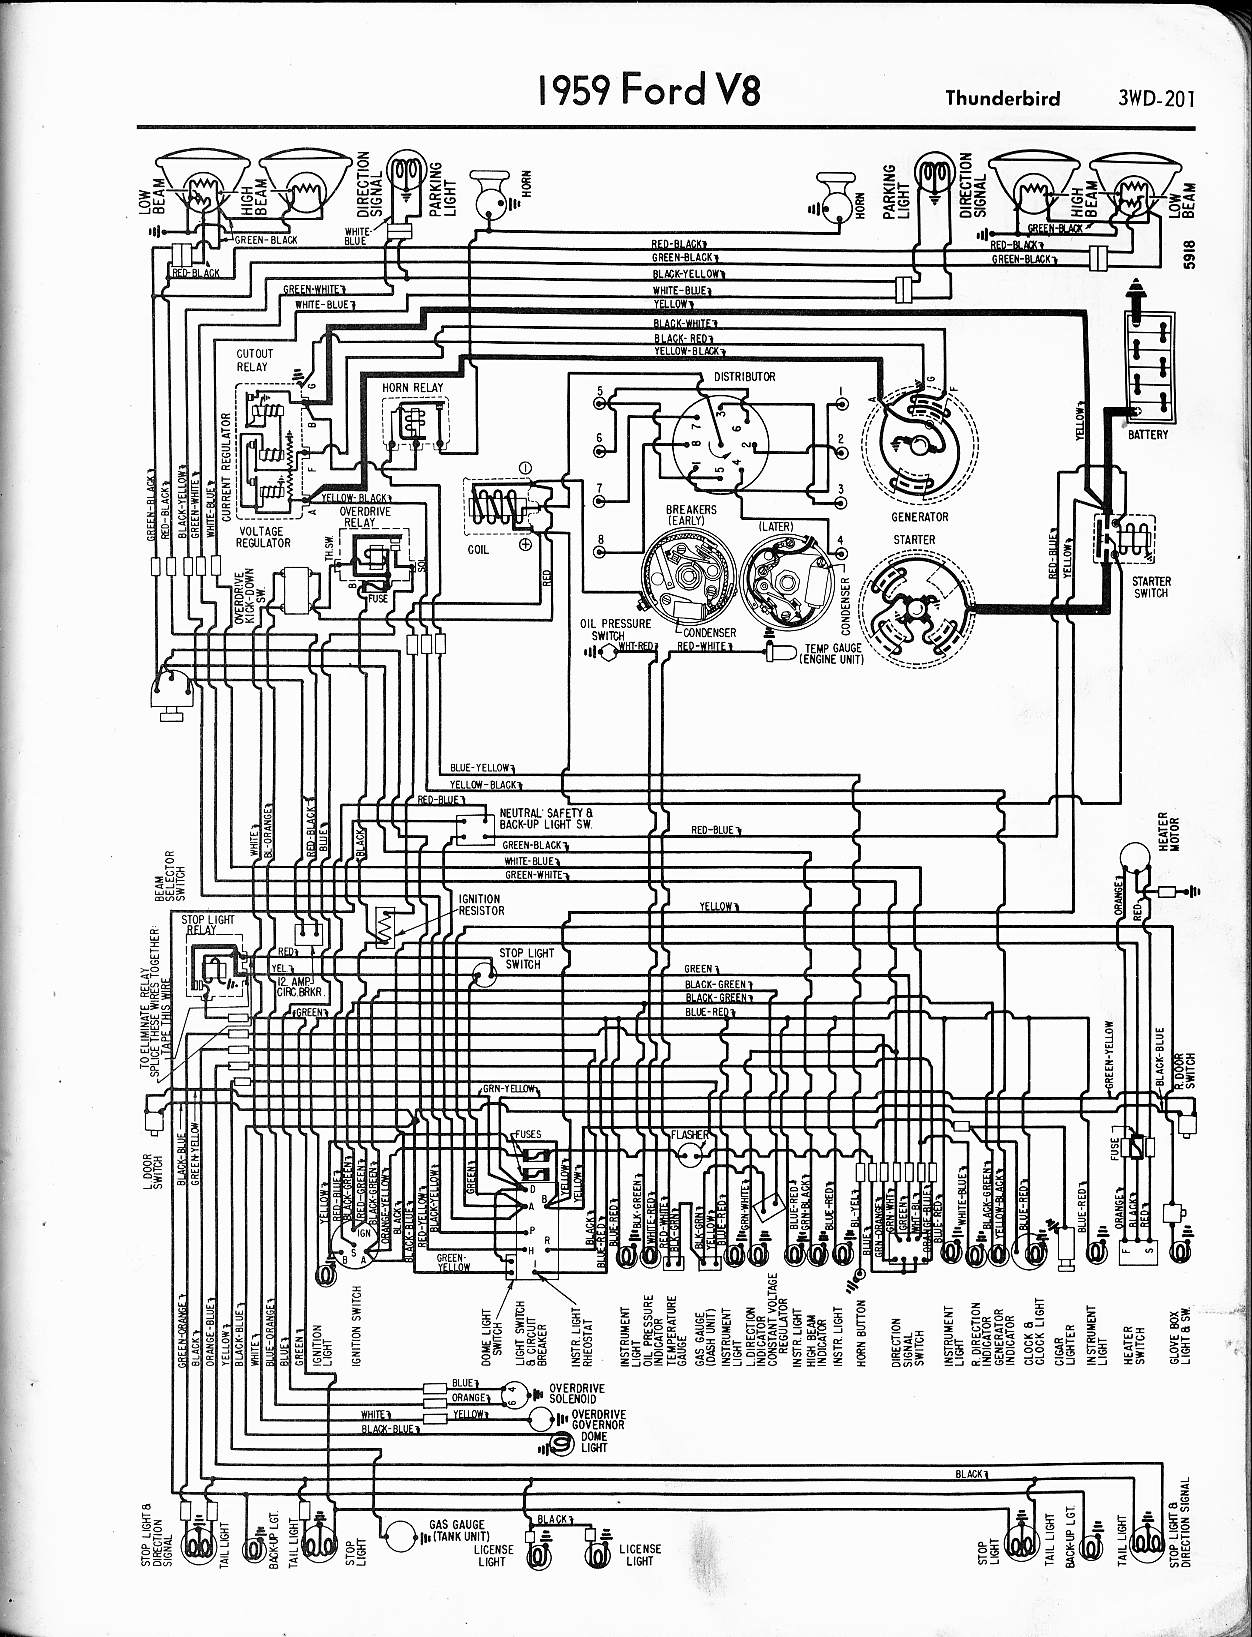 Early Pictures Of Dc Wiring Circuit Data Diagrams Motor Diagram Free Download Schematic 57 65 Ford Rh Oldcarmanualproject Com Brush Controller 48 Volts